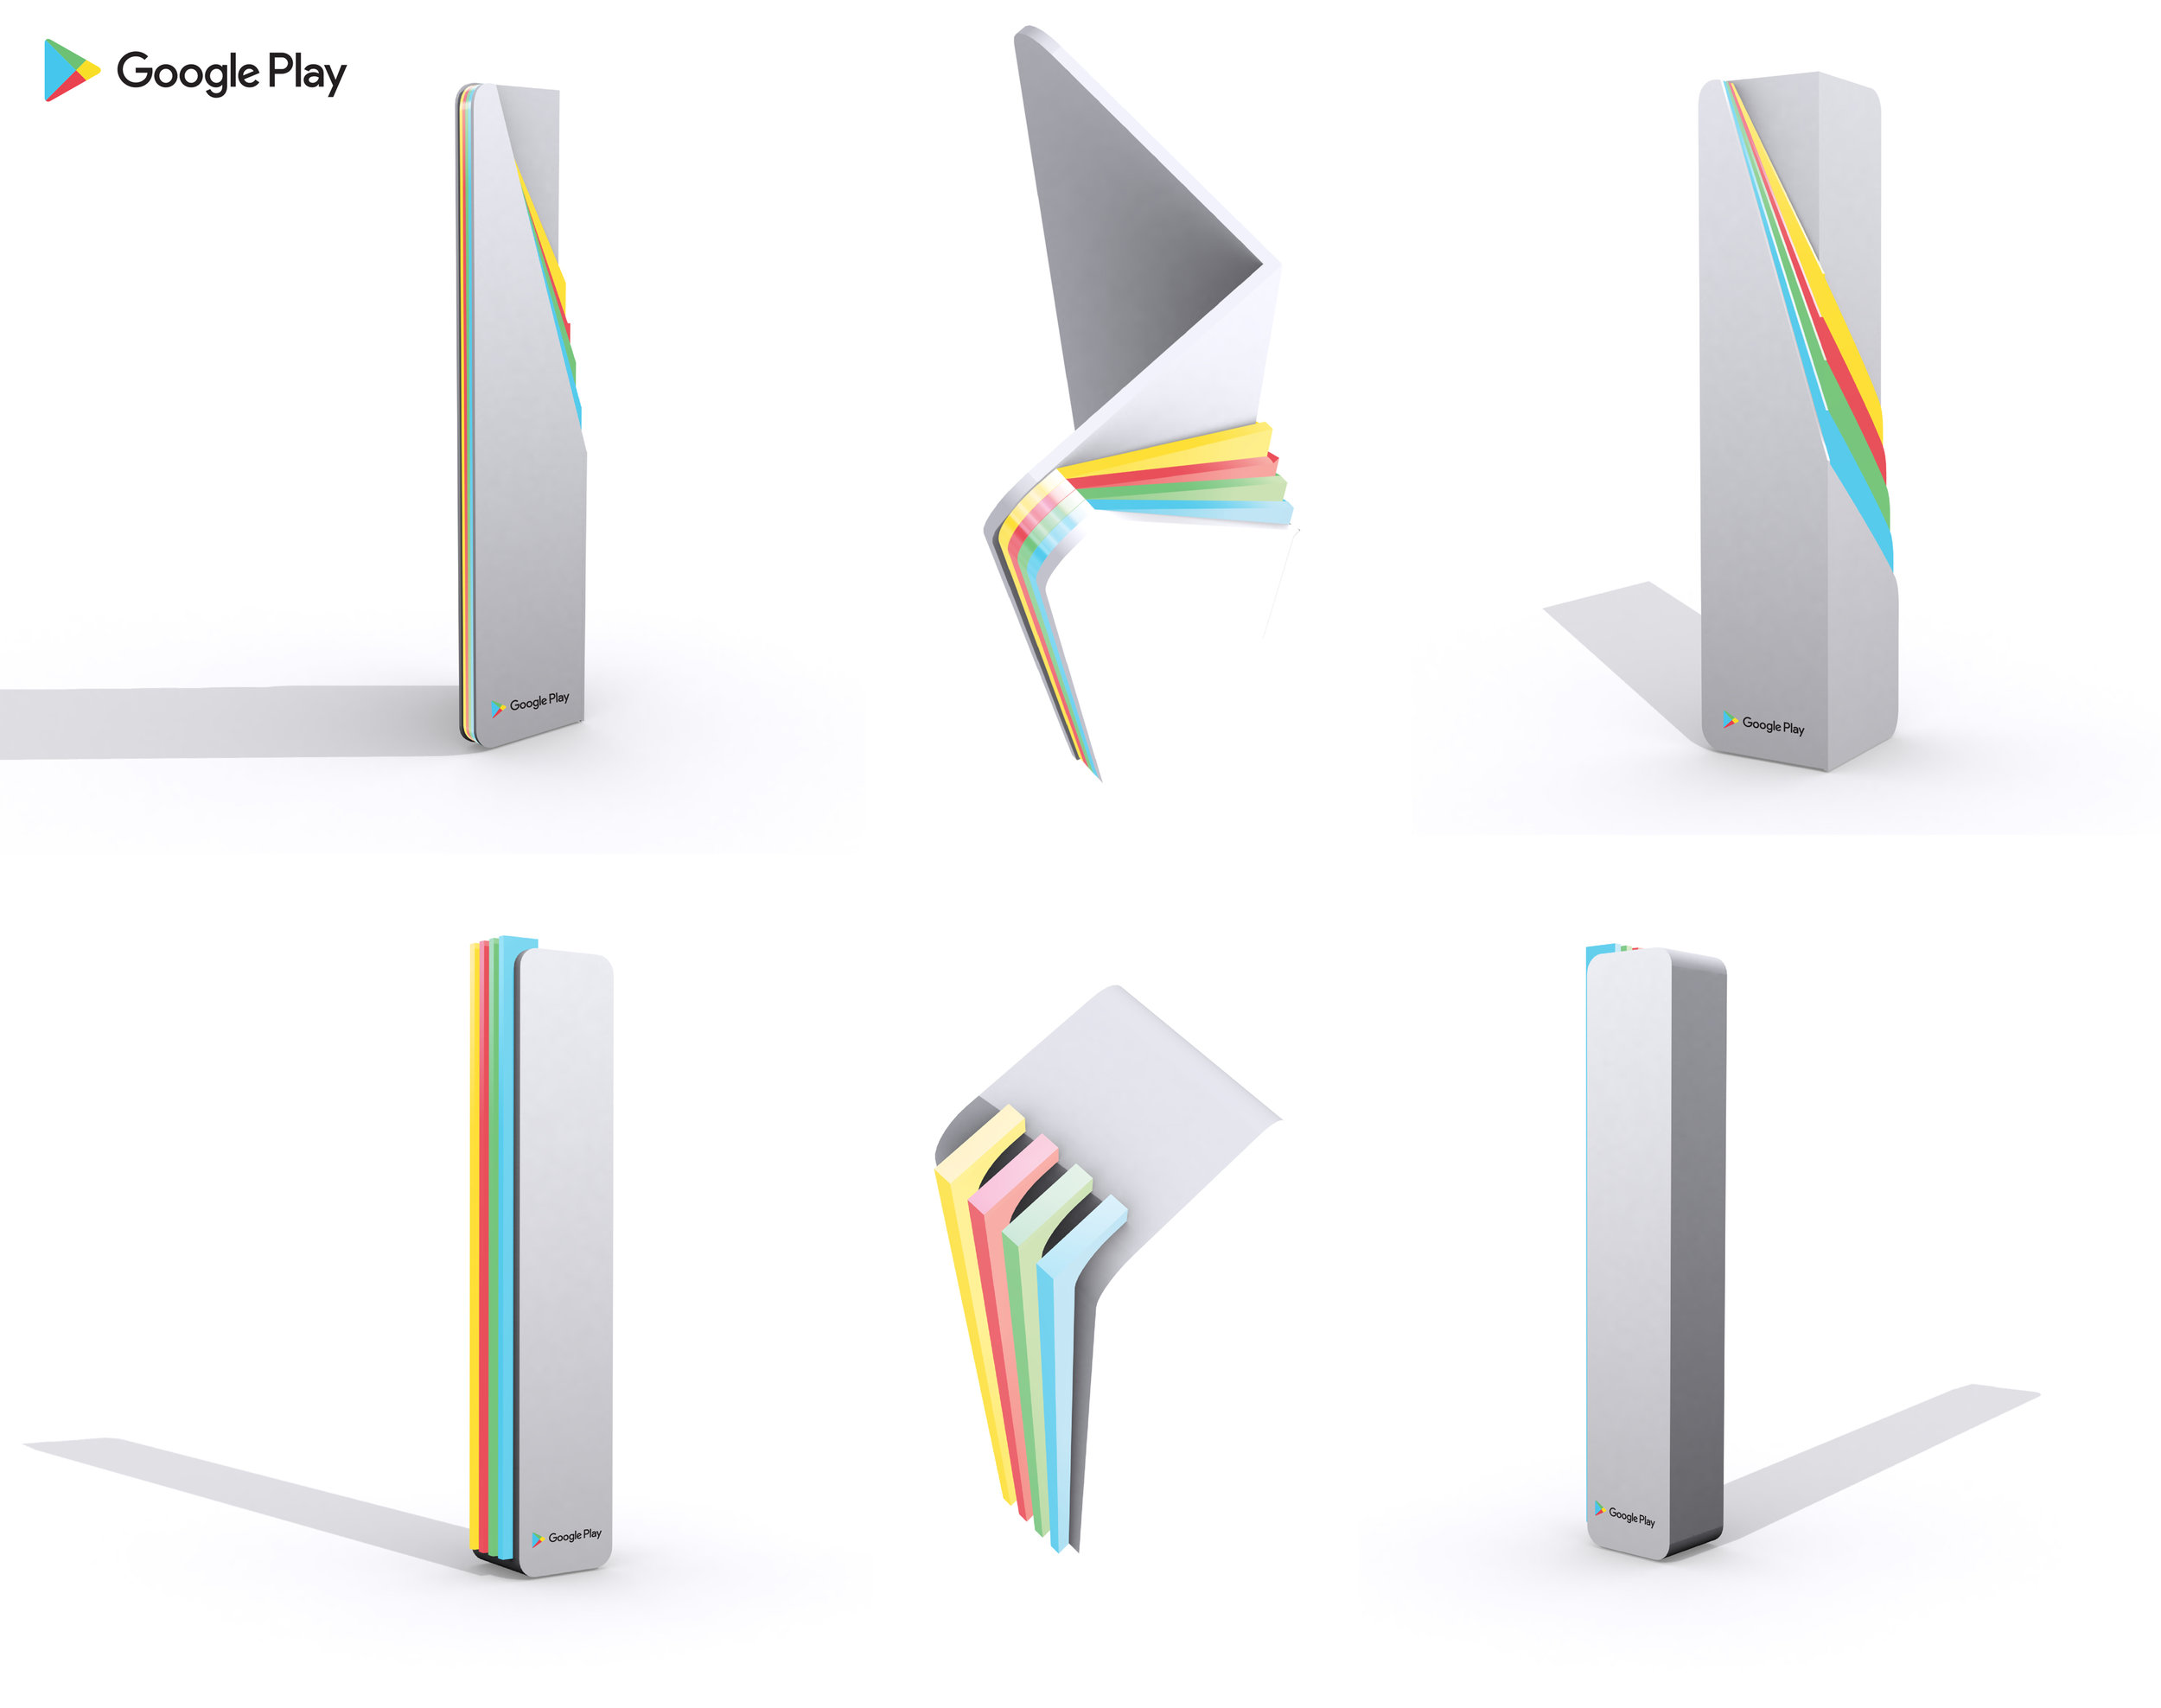 google play awards - custom designs